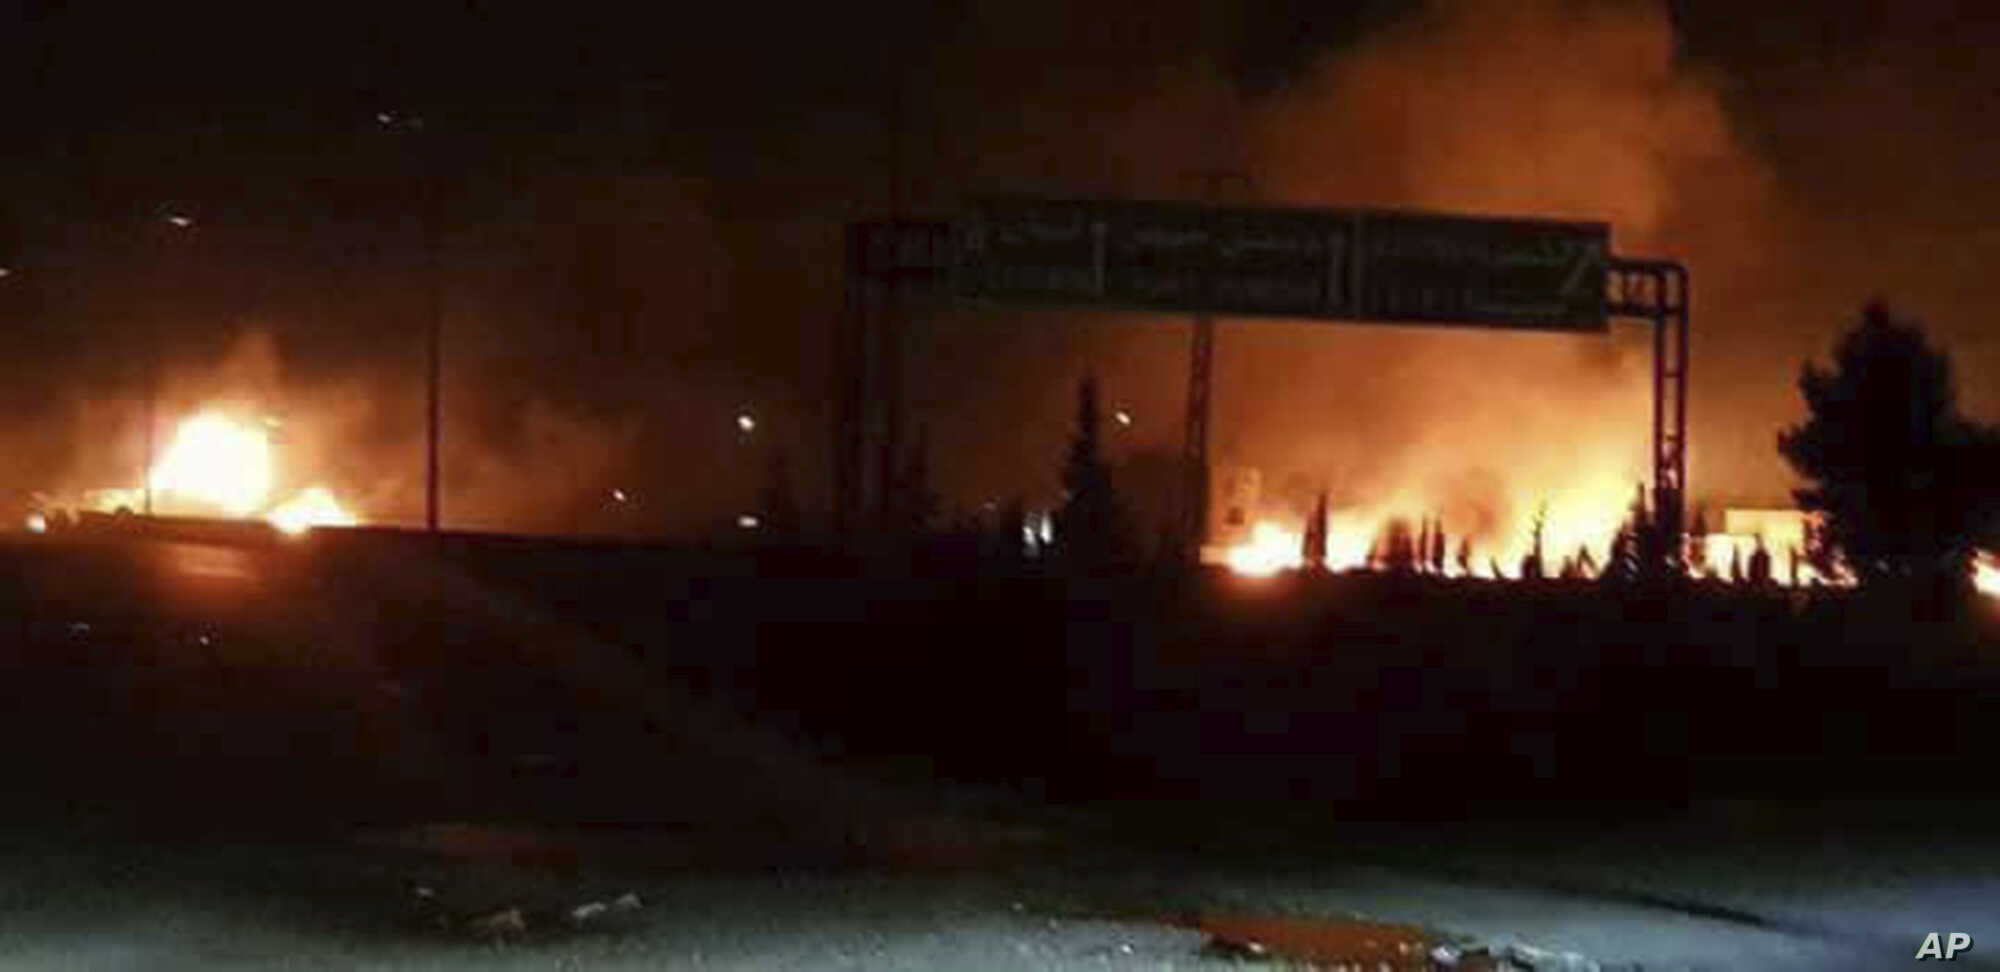 This photo released on Wednesday, May 9, 2018, by the Syrian official news agency SANA, shows flames rising after an attack in an area known to have numerous Syrian army military bases, in Kisweh, south of Damascus, Syria.